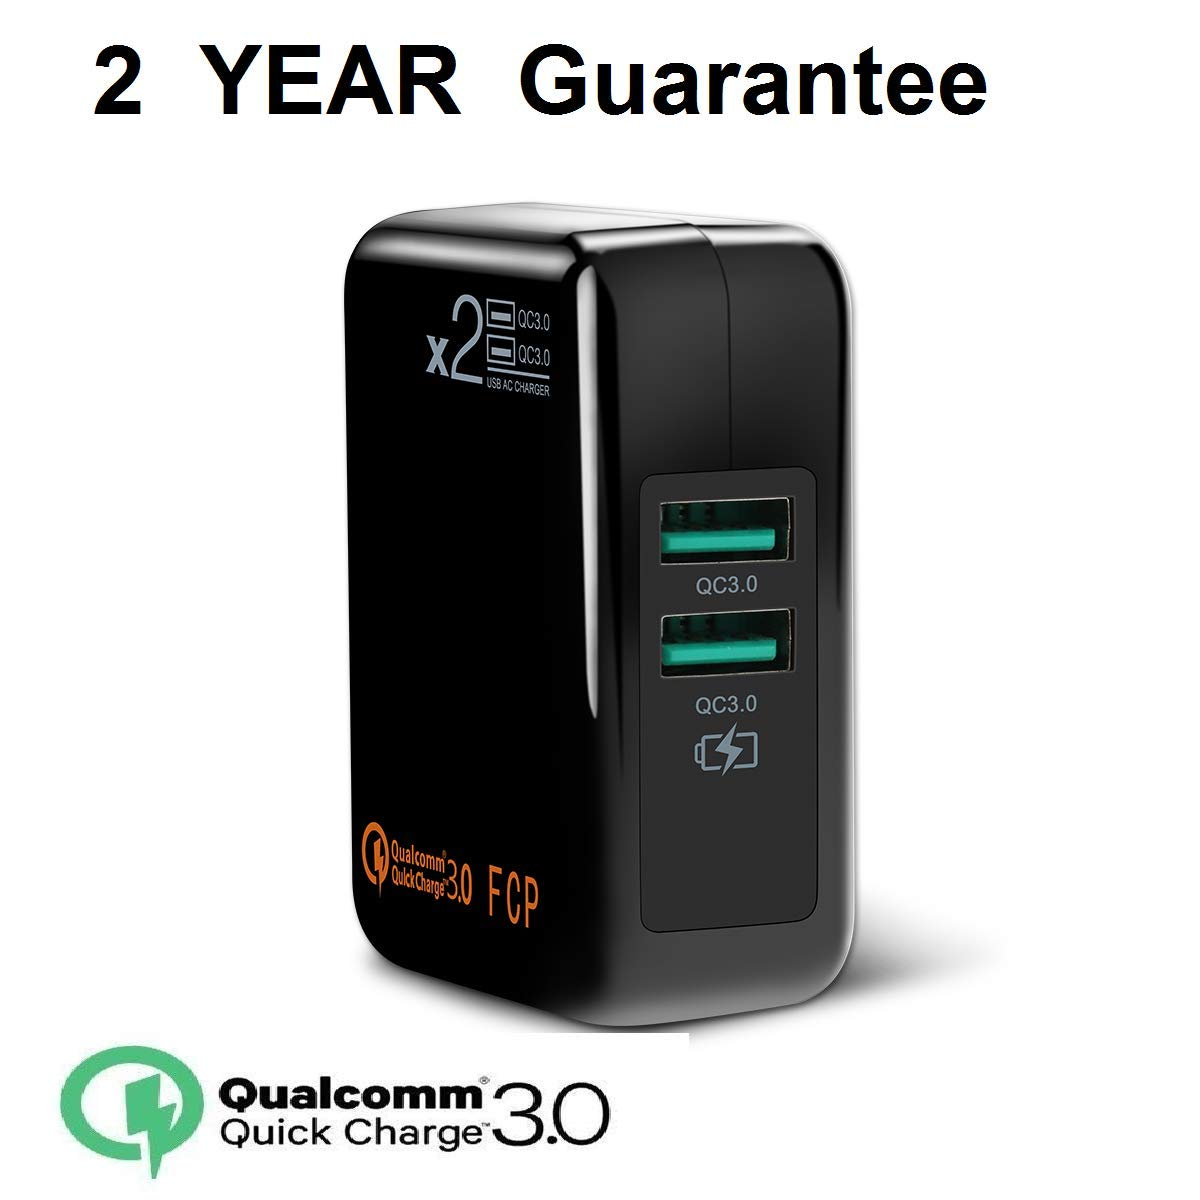 [QC3.0=2USB]Dual Quick Charge3.0 30W USB Wall Charger,Travel Fast Charger Adapter QC2.0 Quick Charging Block Plug SmartPorts+Detachable Plug for SamsungS8,Note,iPhoneiPad,LG Nexus HTC More-Black